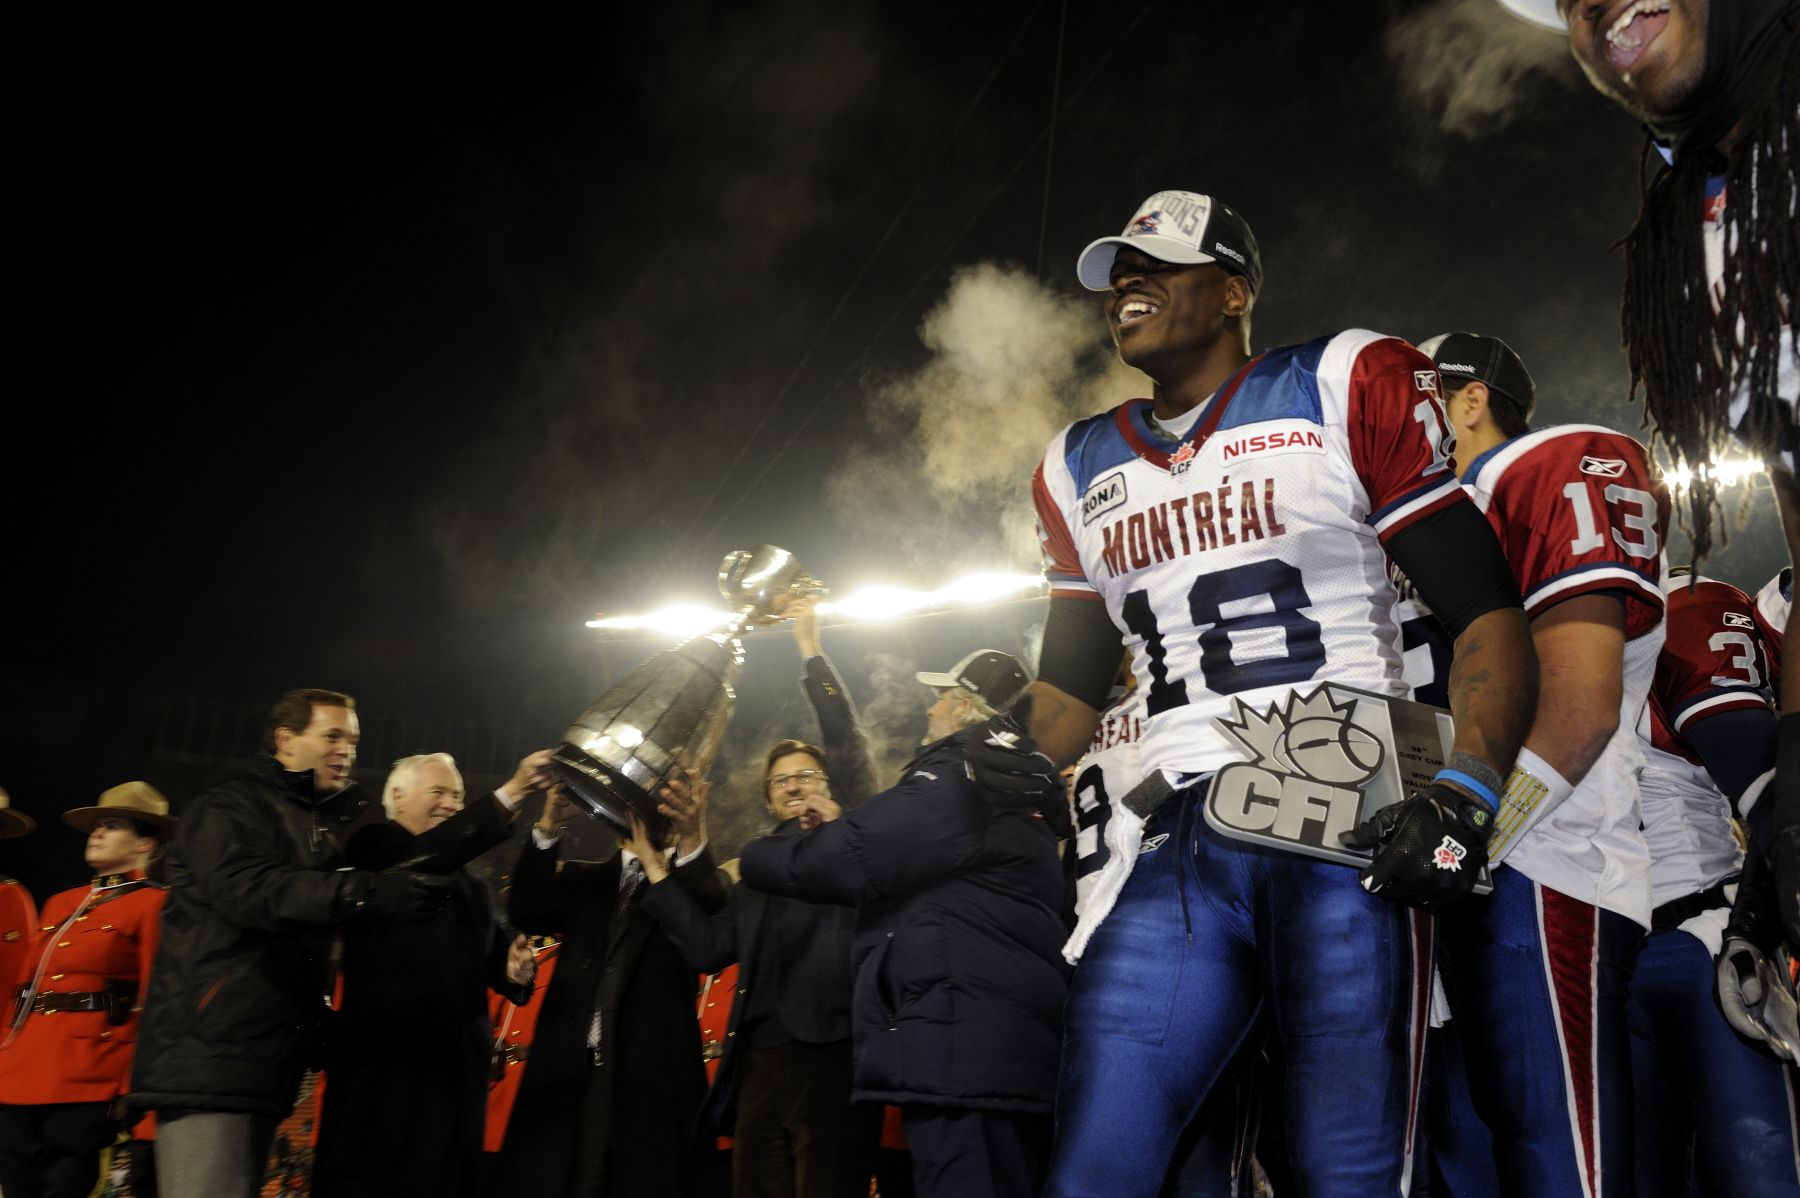 Accompanied by CFL Commissioner Mark Cohon, His Excellency presented the Grey Cup trophy to this year's winning team of the 98th Grey Cup Championship, the Montréal Alouettes.